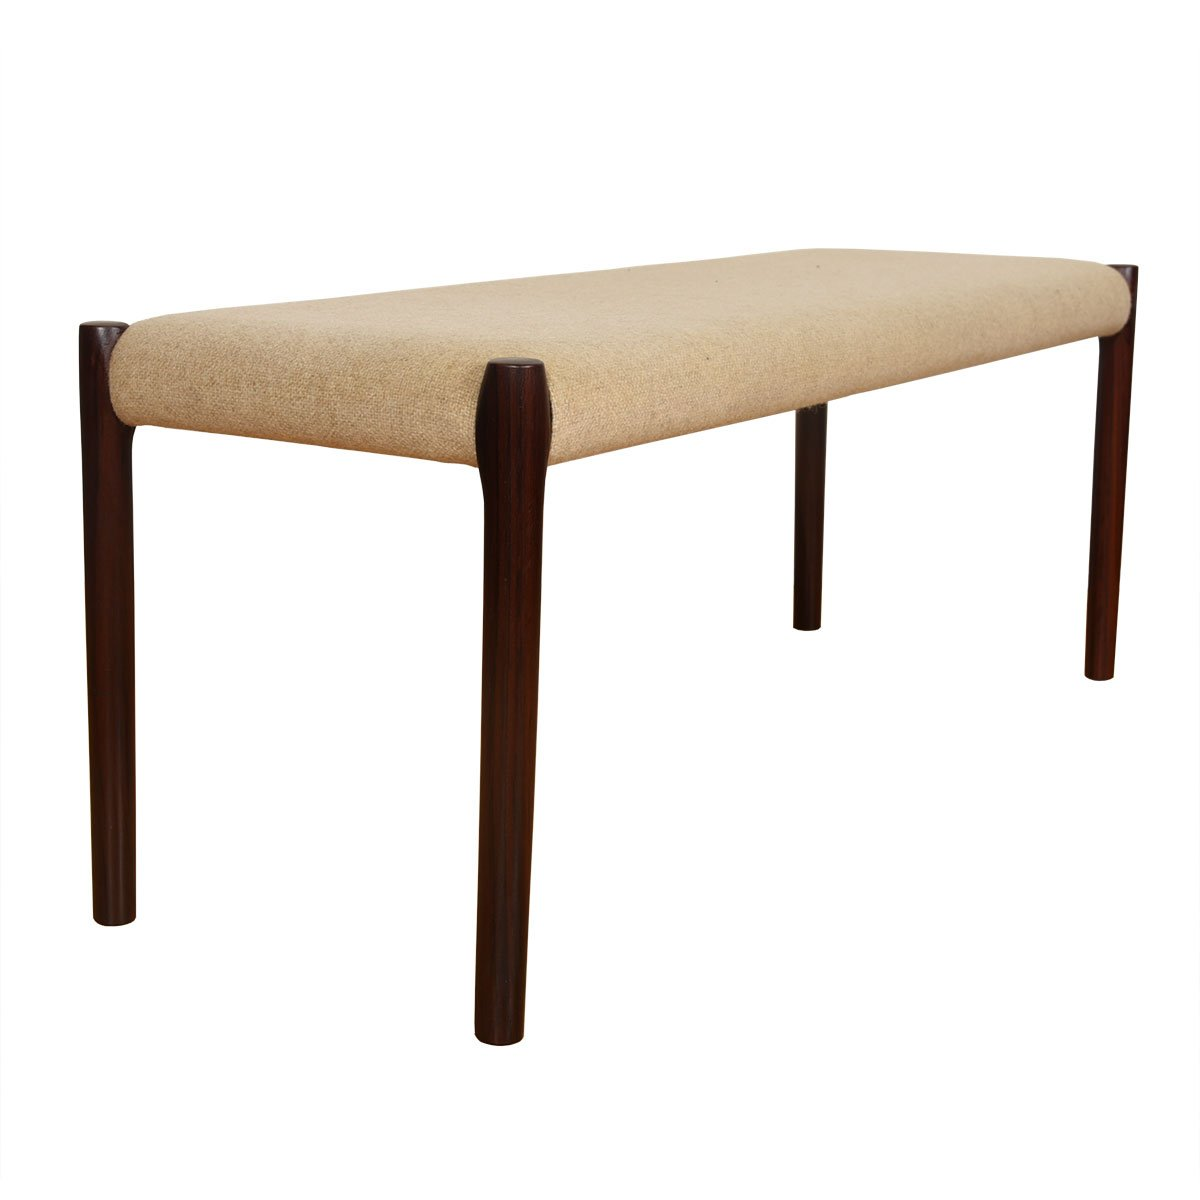 Danish Modern Rosewood Upholstered Bench by Niels Møller